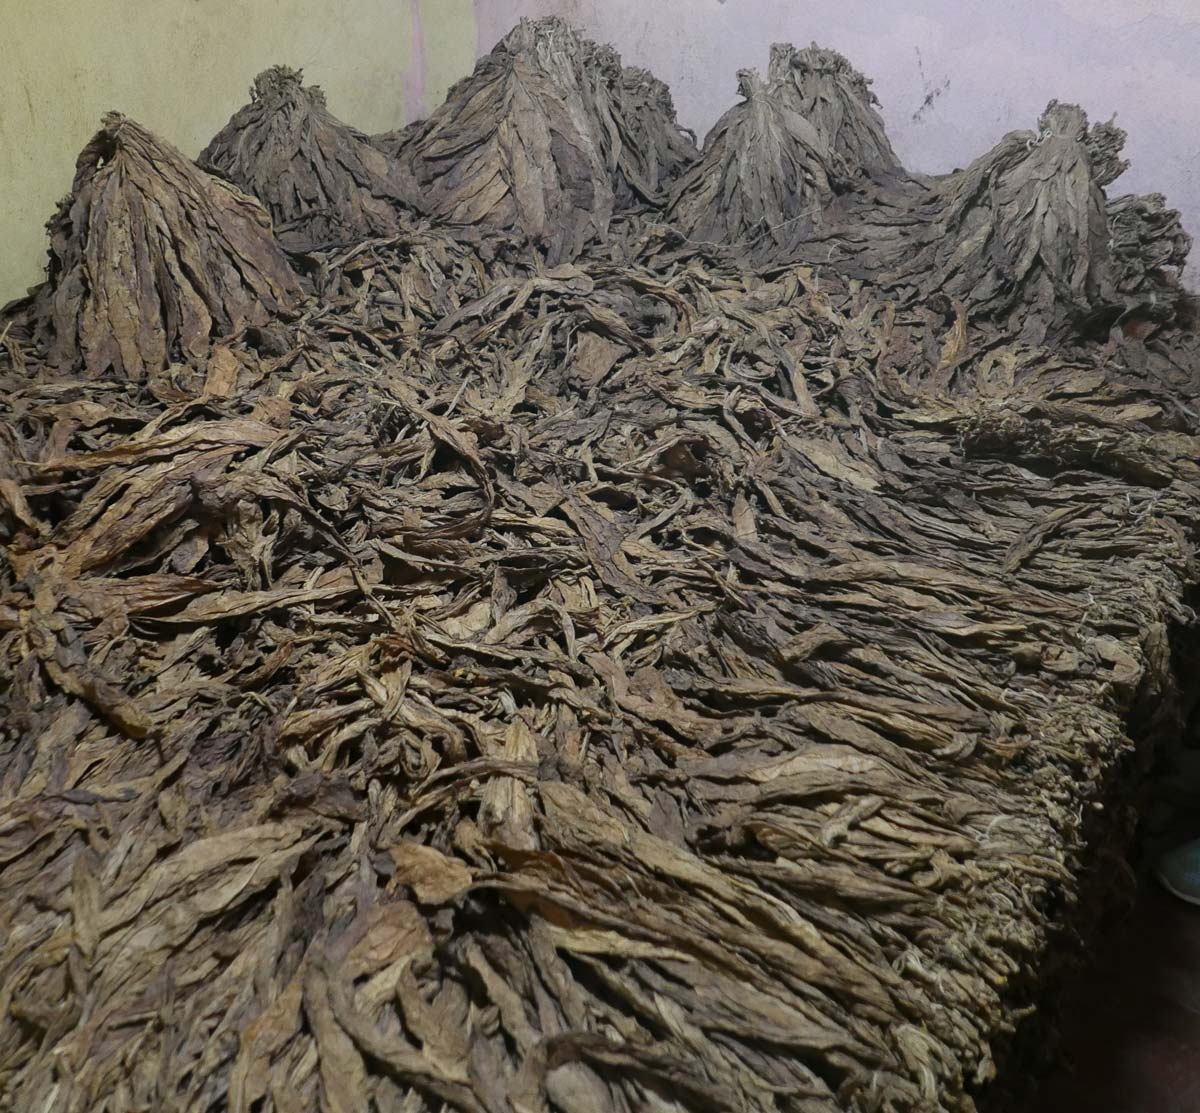 Drying tobacco leaves in a cigar factory in Esteli, Nicaragua